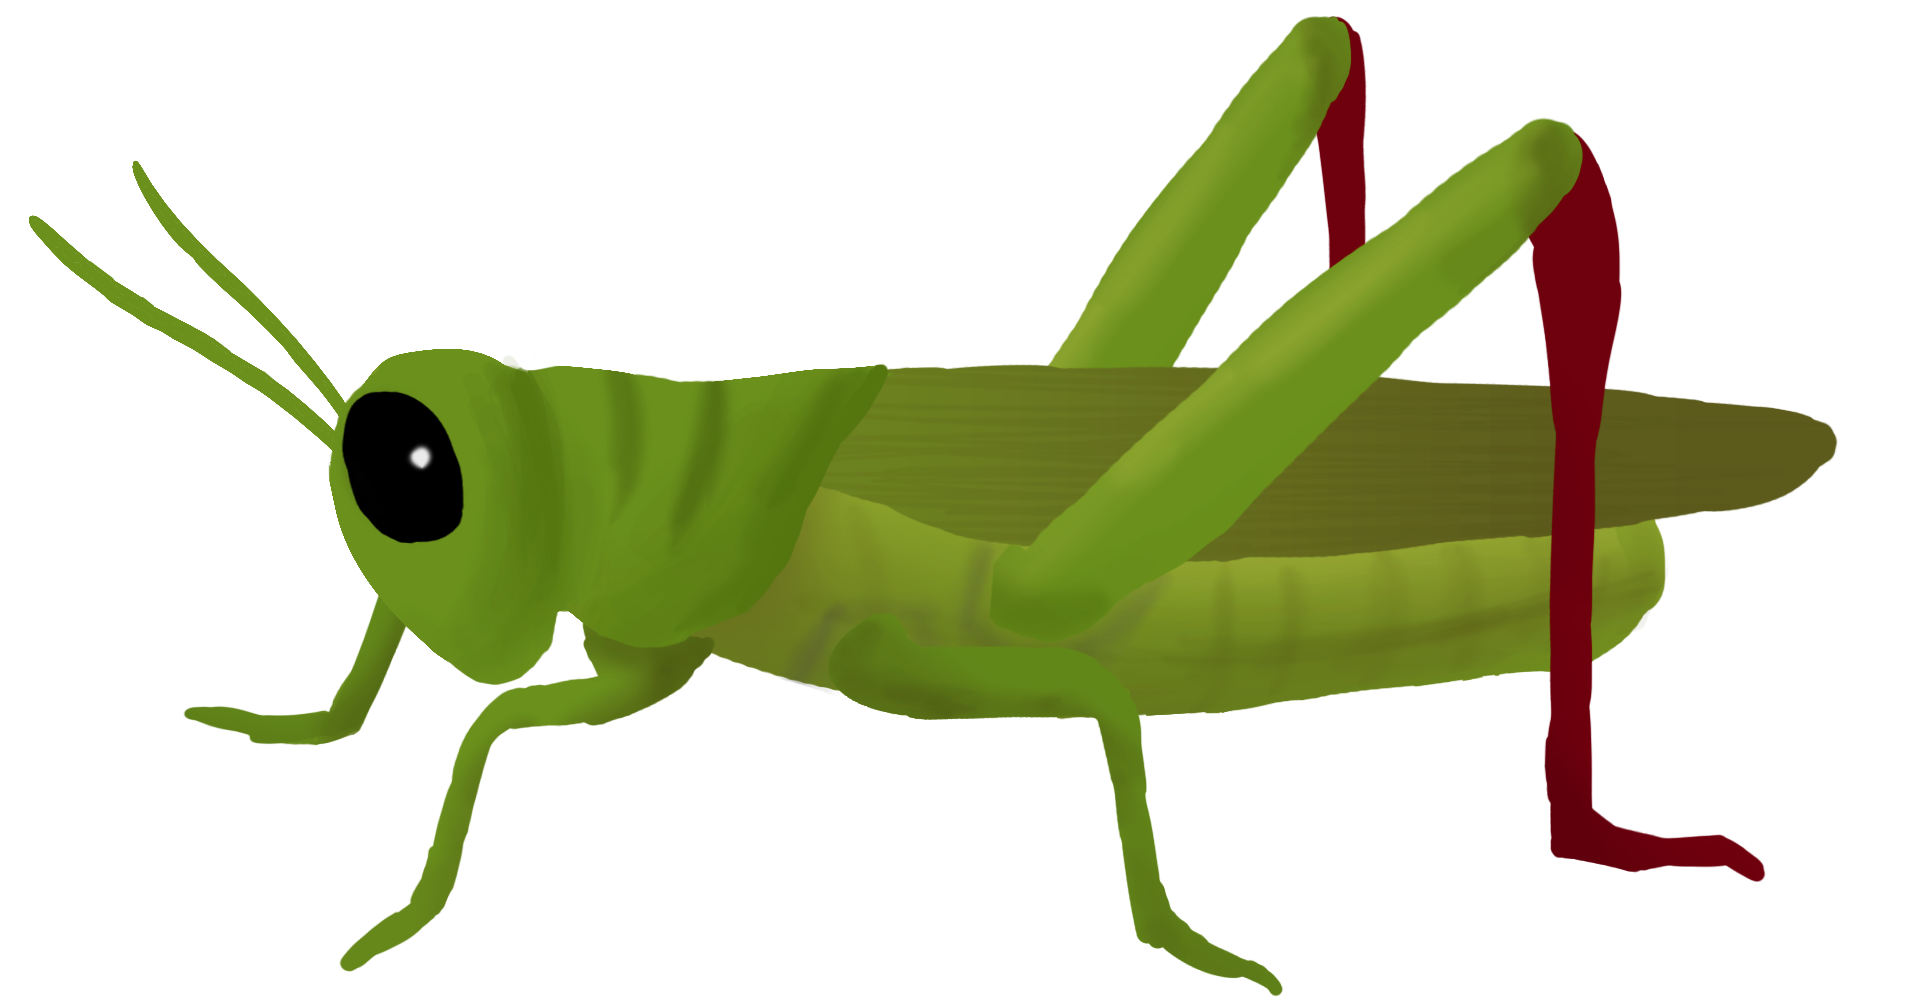 Insect clipart insect grasshopper.  collection of cricket